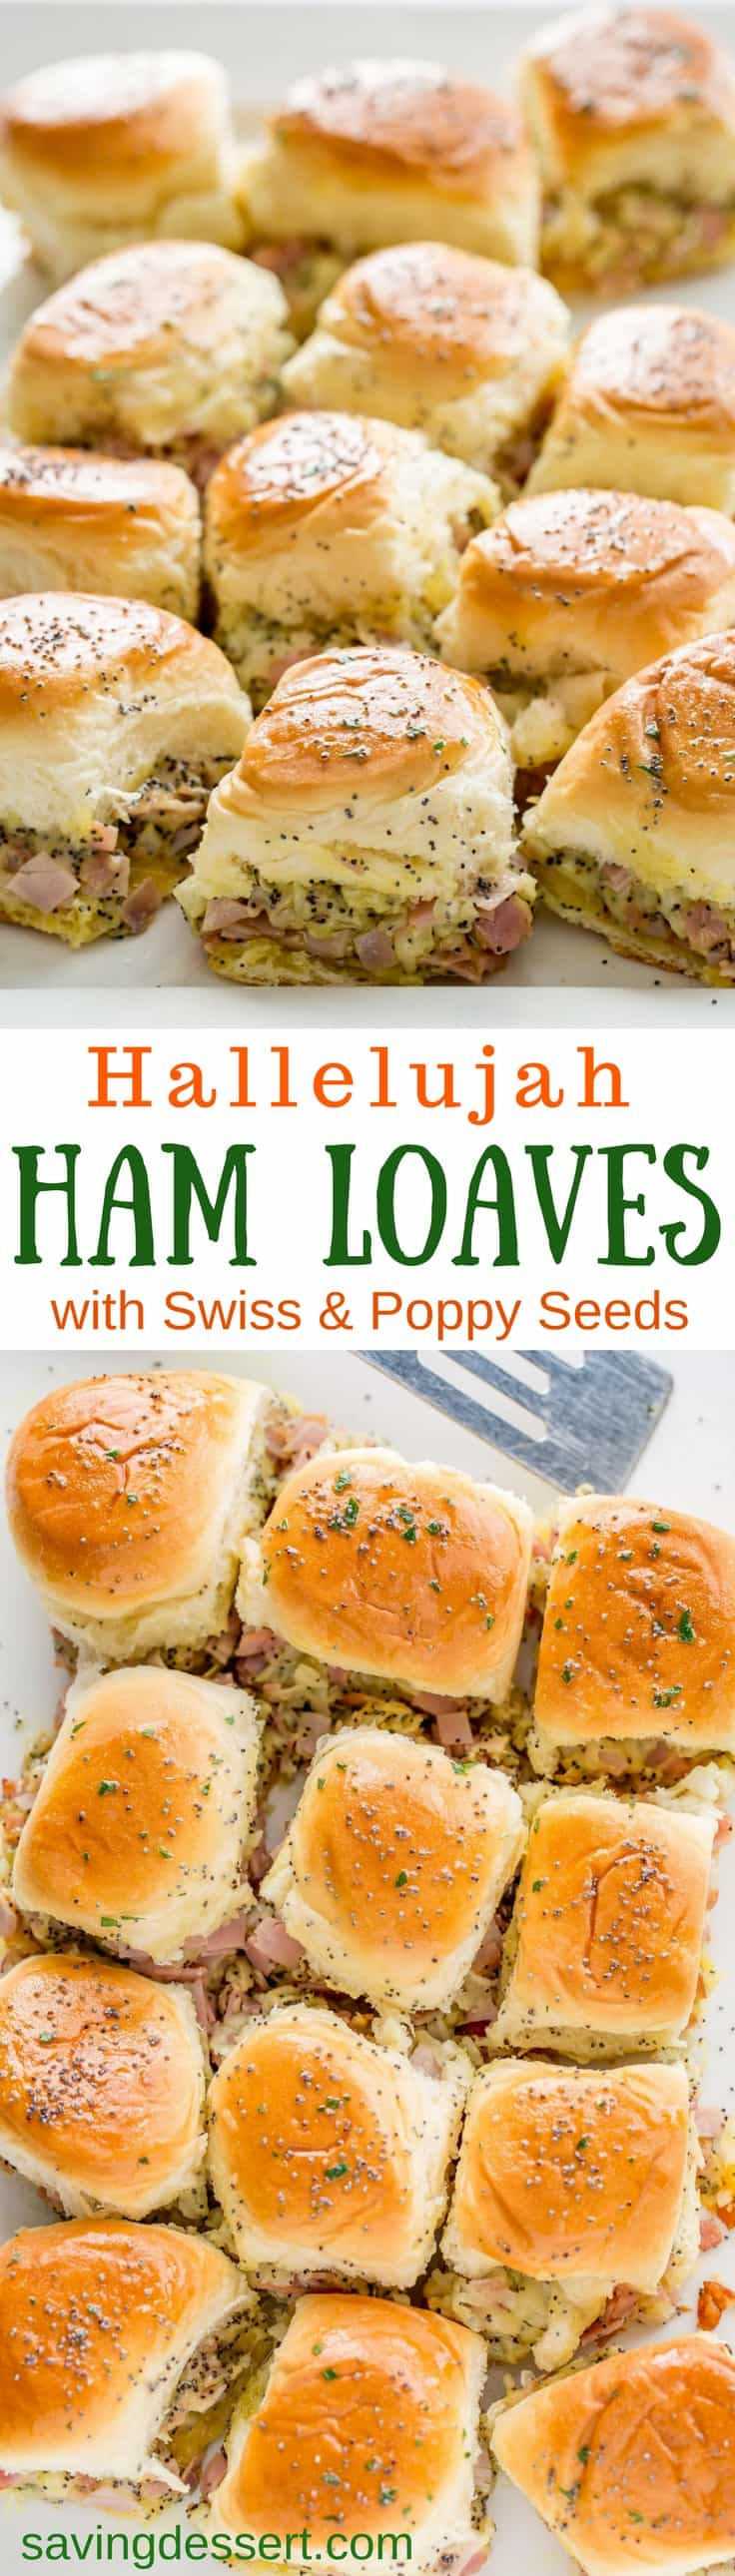 Hallelujah Ham Loaves (also known as ham and cheese sliders) - Stuffed with chopped sweet ham, plenty of shredded Swiss, diced onions and poppy seeds, these easy make-ahead hearty sliders are just the thing for your office party, anytime get-together, or football-frenzied hoopla! #savingroomfordessert #hamandcheese #sliders #hamsliders #partyfood #partysandwiches #partysliders